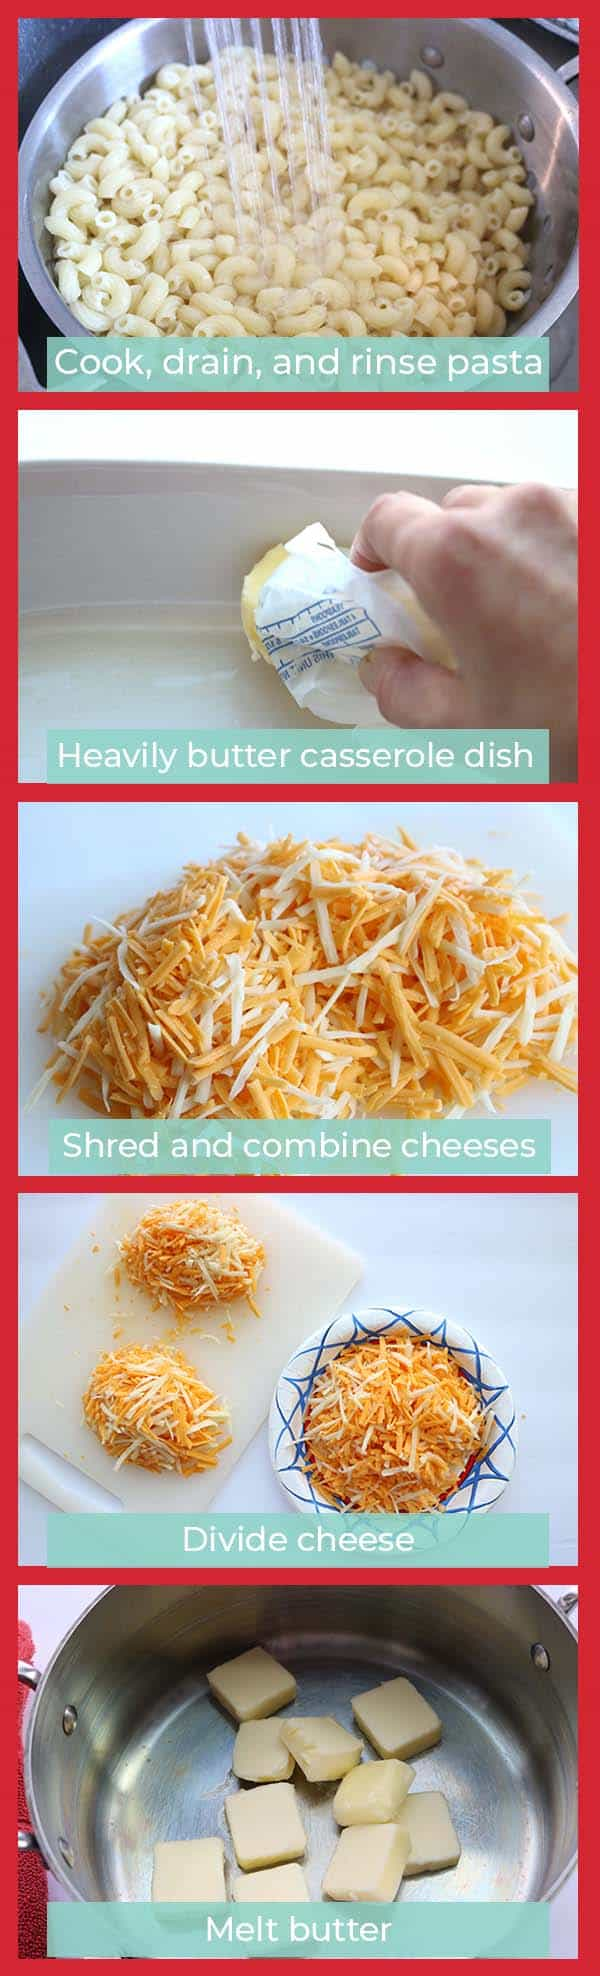 How to make creamy mac and cheese